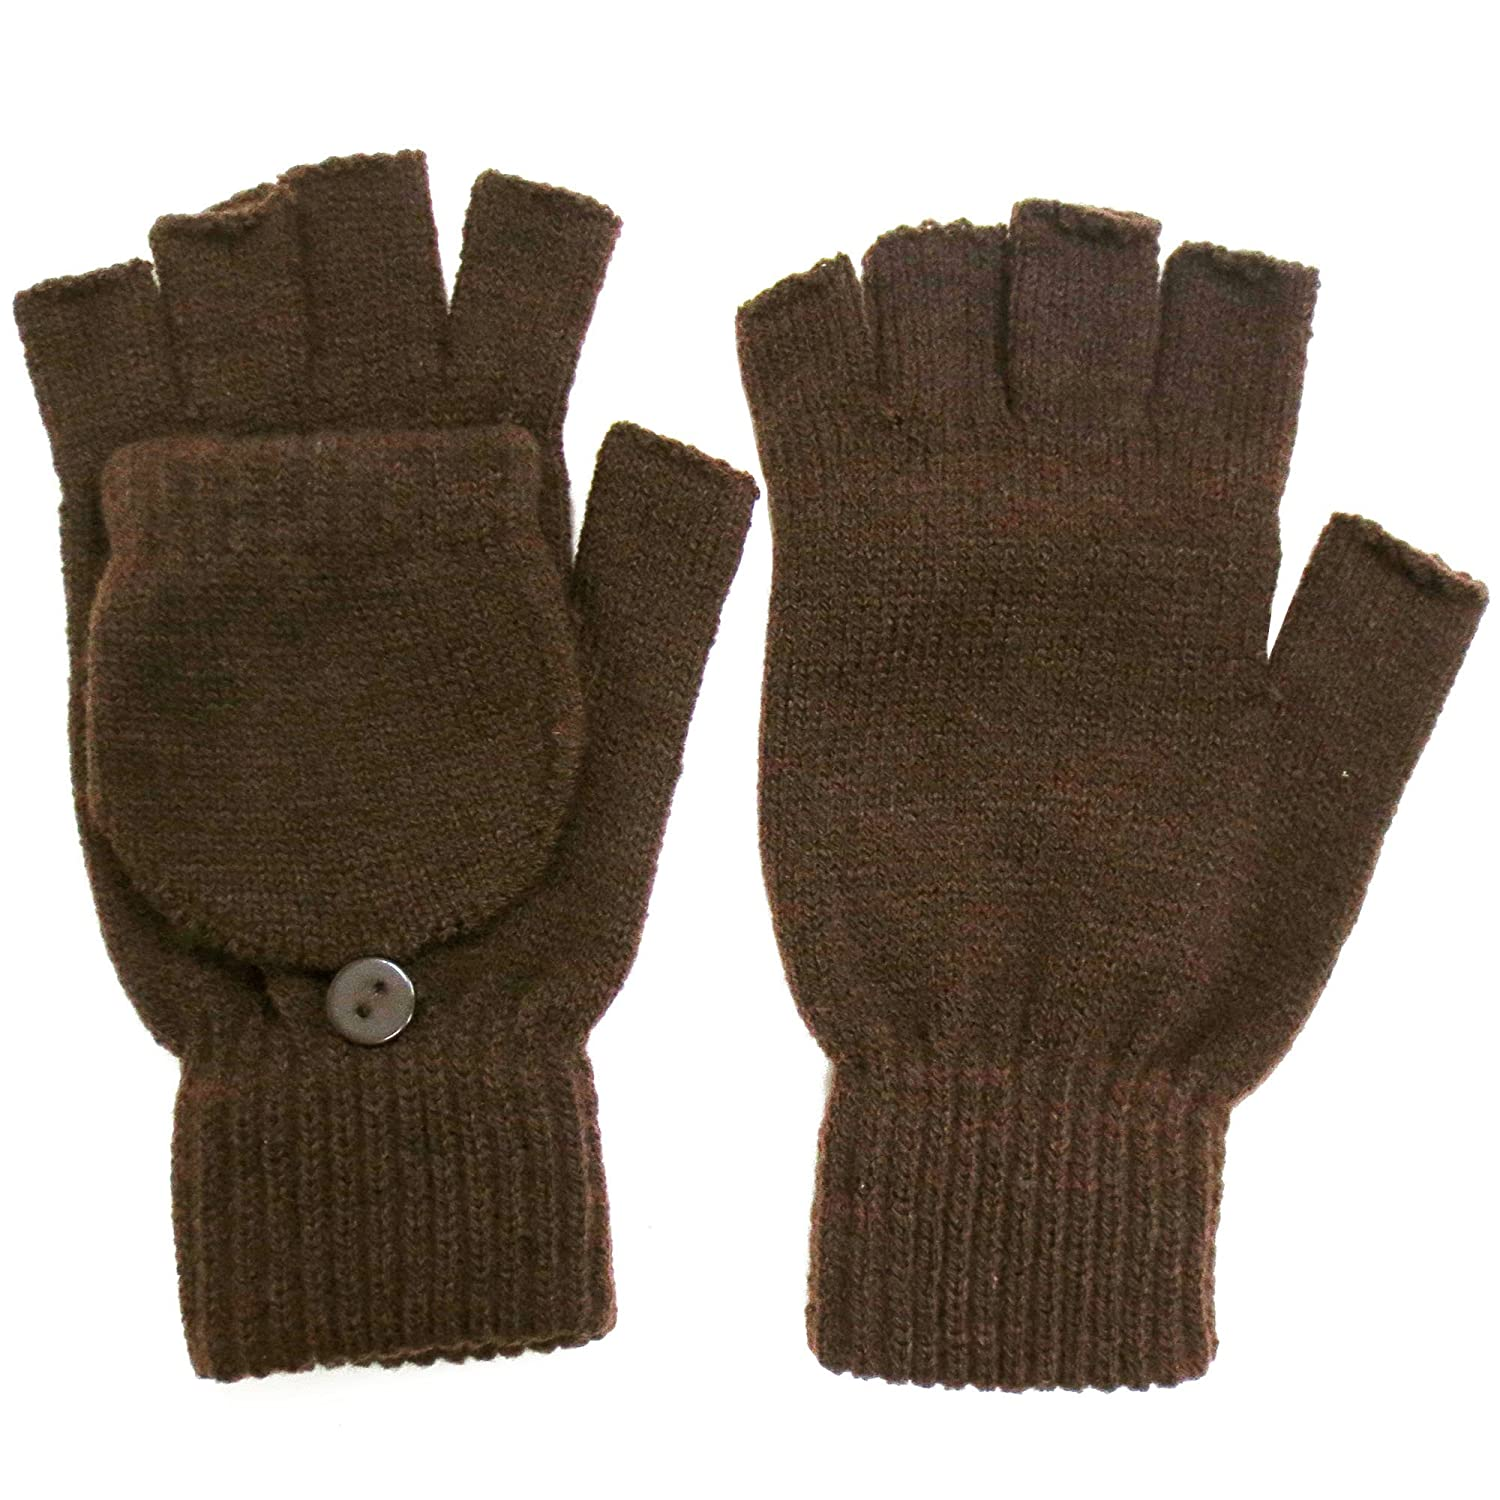 Amazon.com: Winter Fingerless Gloves with Flap Cover Mitten Gloves ...